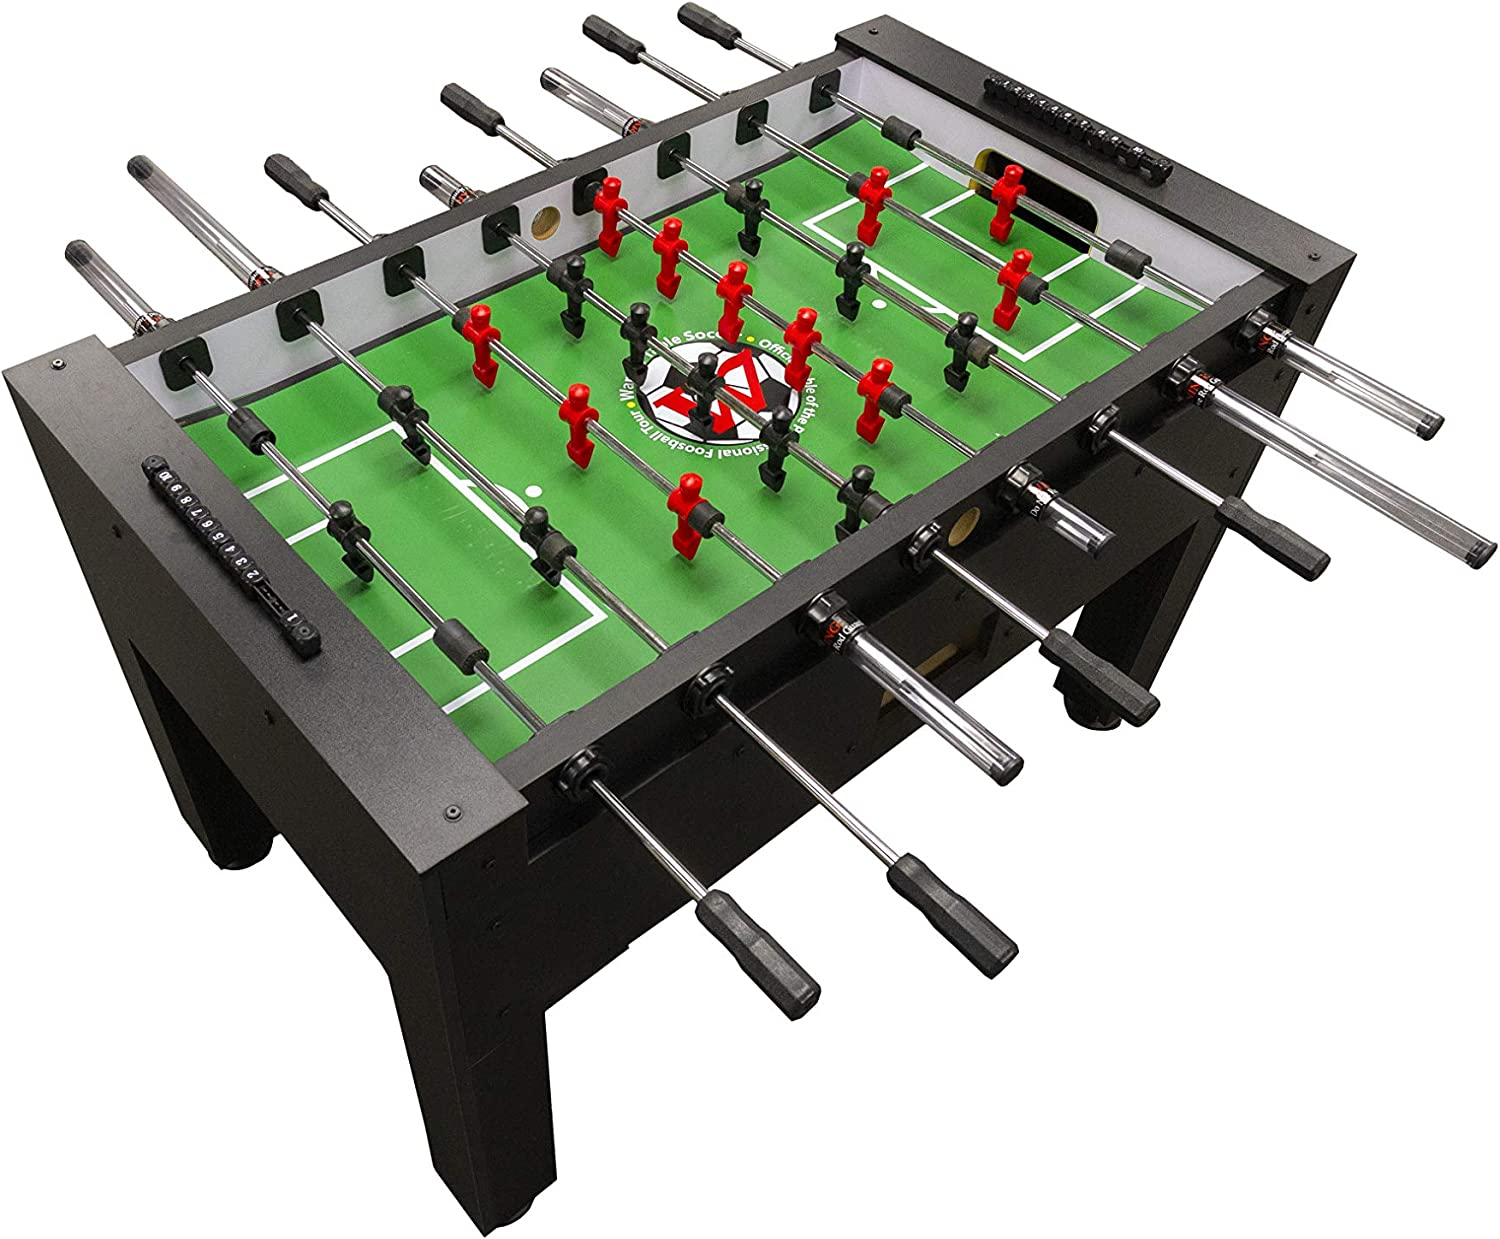 Warrior Table Soccer Pro Foosball Table 2020 Model 56 Inch Black Toys Games